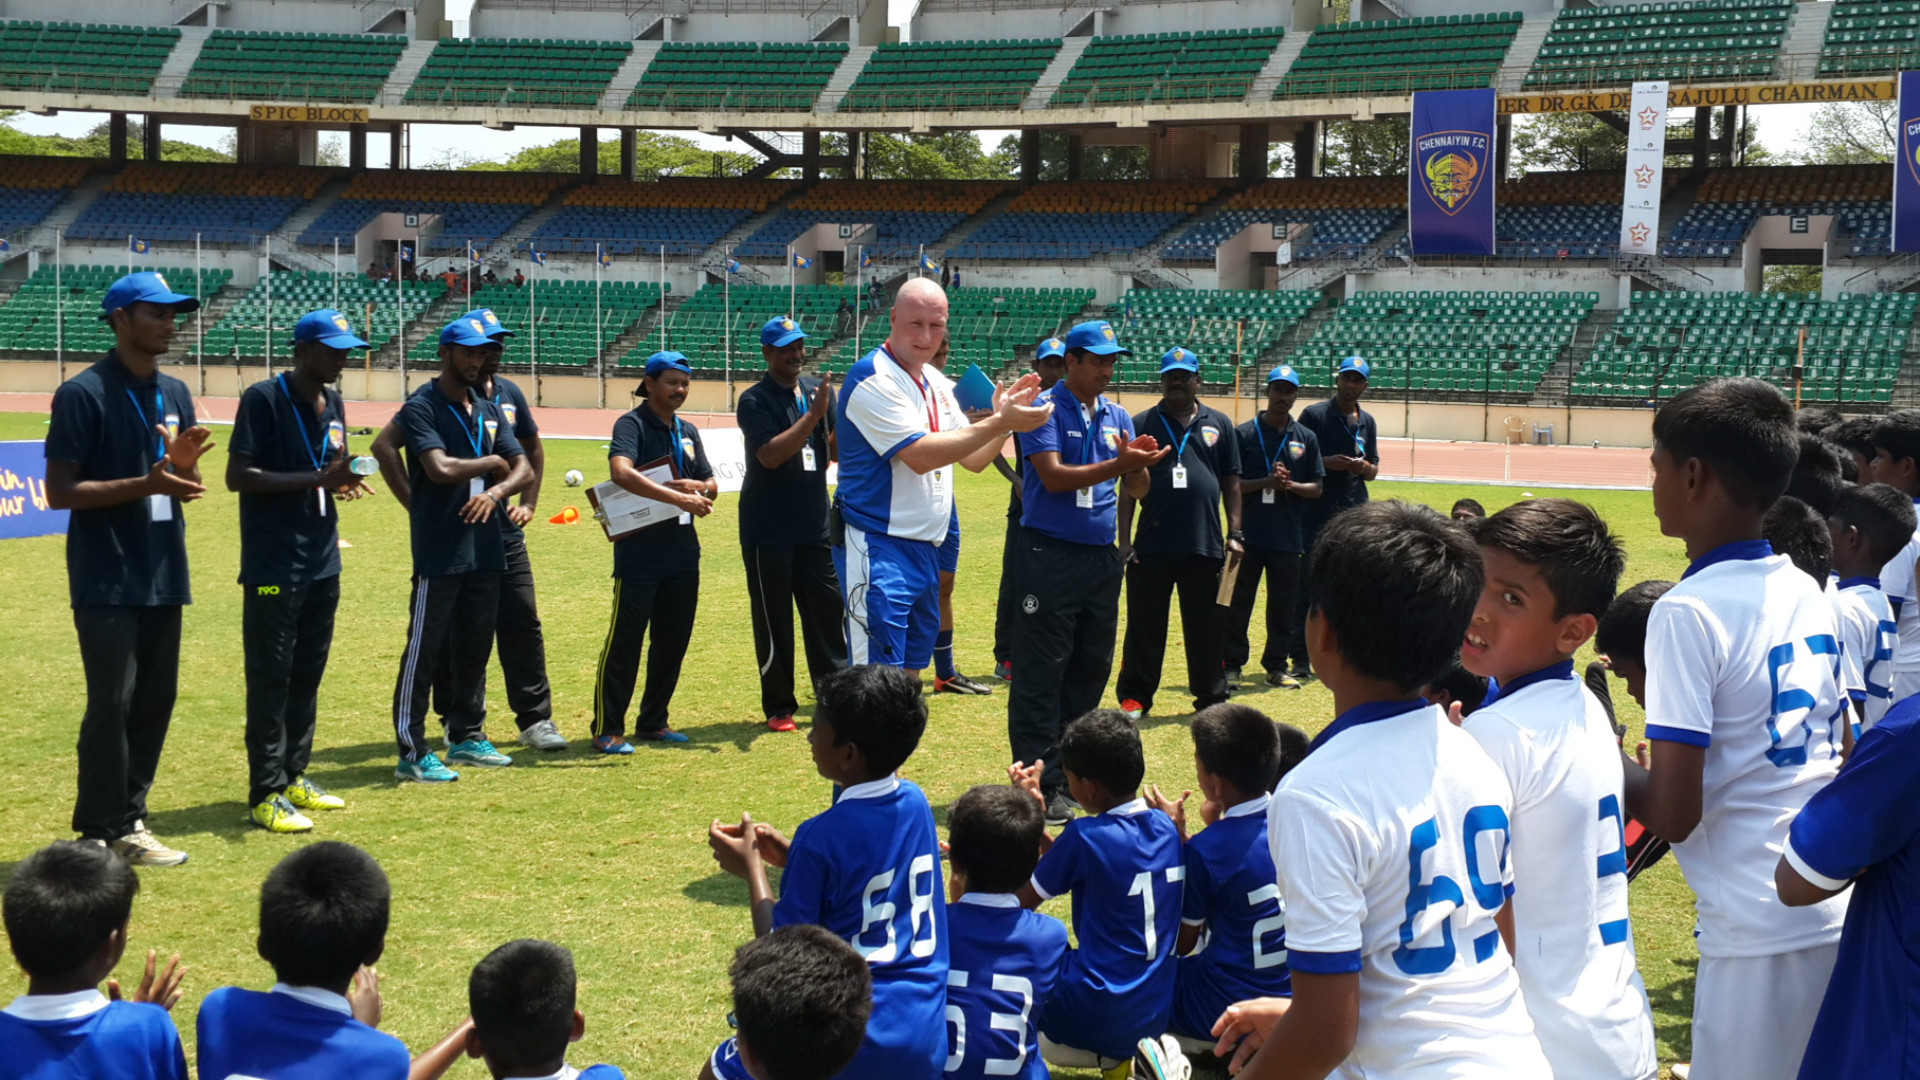 Marcus Michael Vaessen Syed Sabir Pasha Chennaiyin FC Reliance Foundation Young Champs